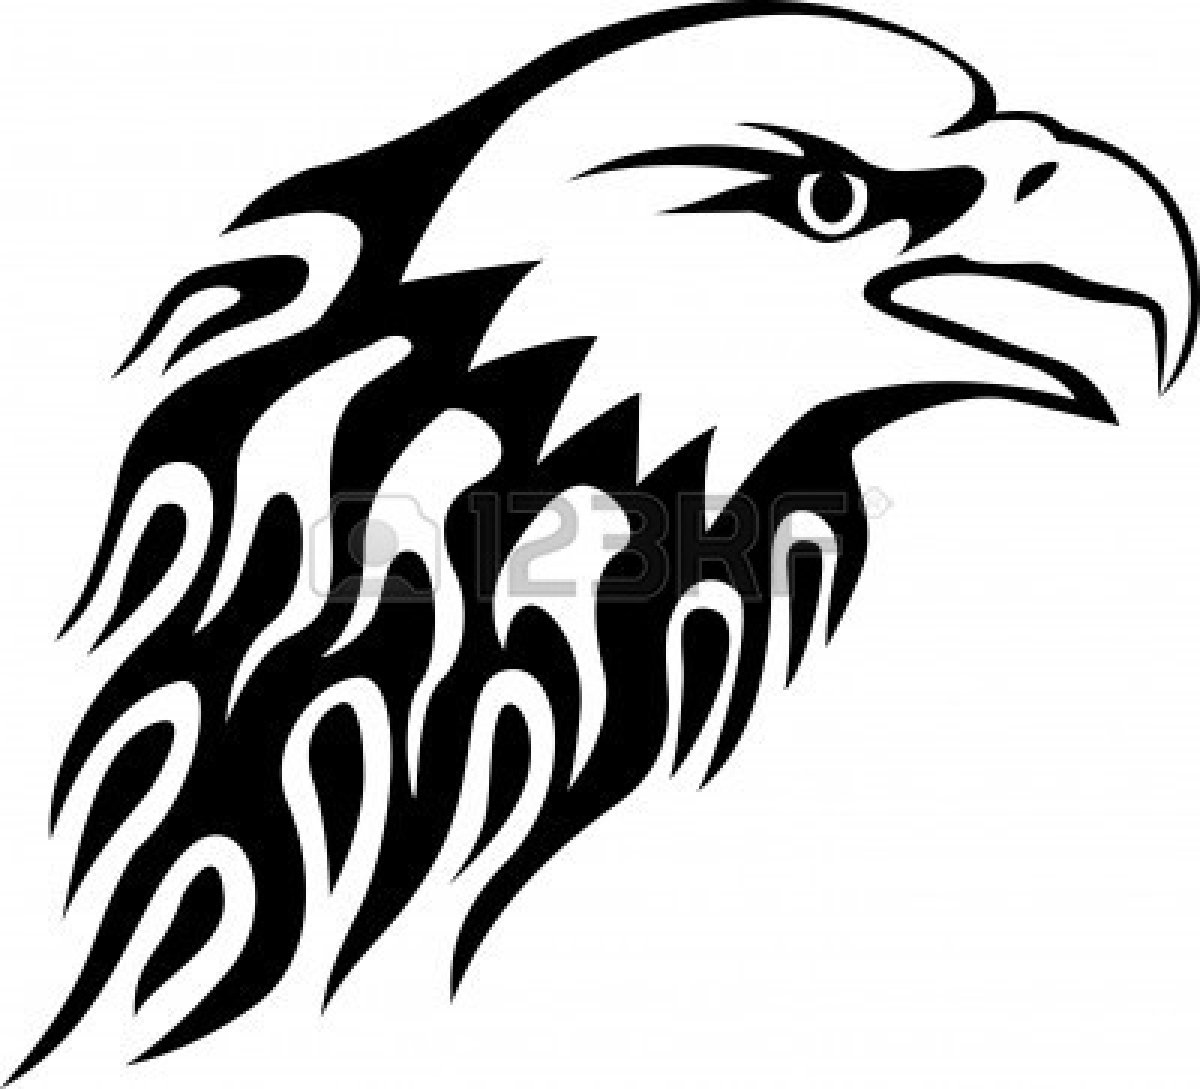 Eagle Clip Art Black And White   Clipart Panda   Free Clipart Images